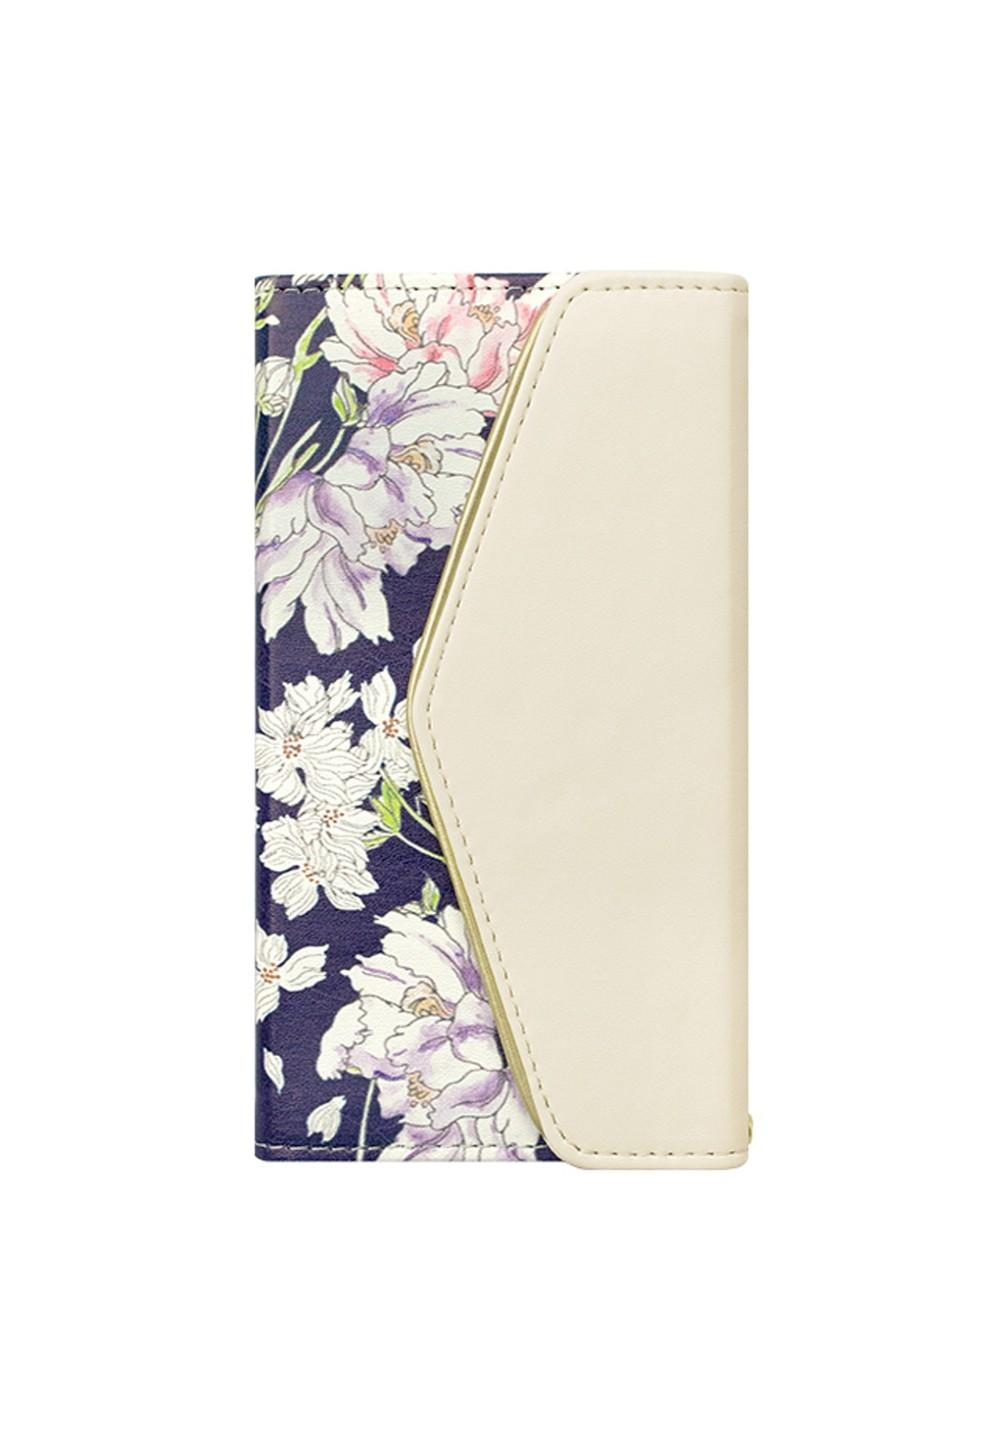 UNiCASE BLUE LABEL / Flower Series mirror case for iPhoneX(Chic Peony) - #1